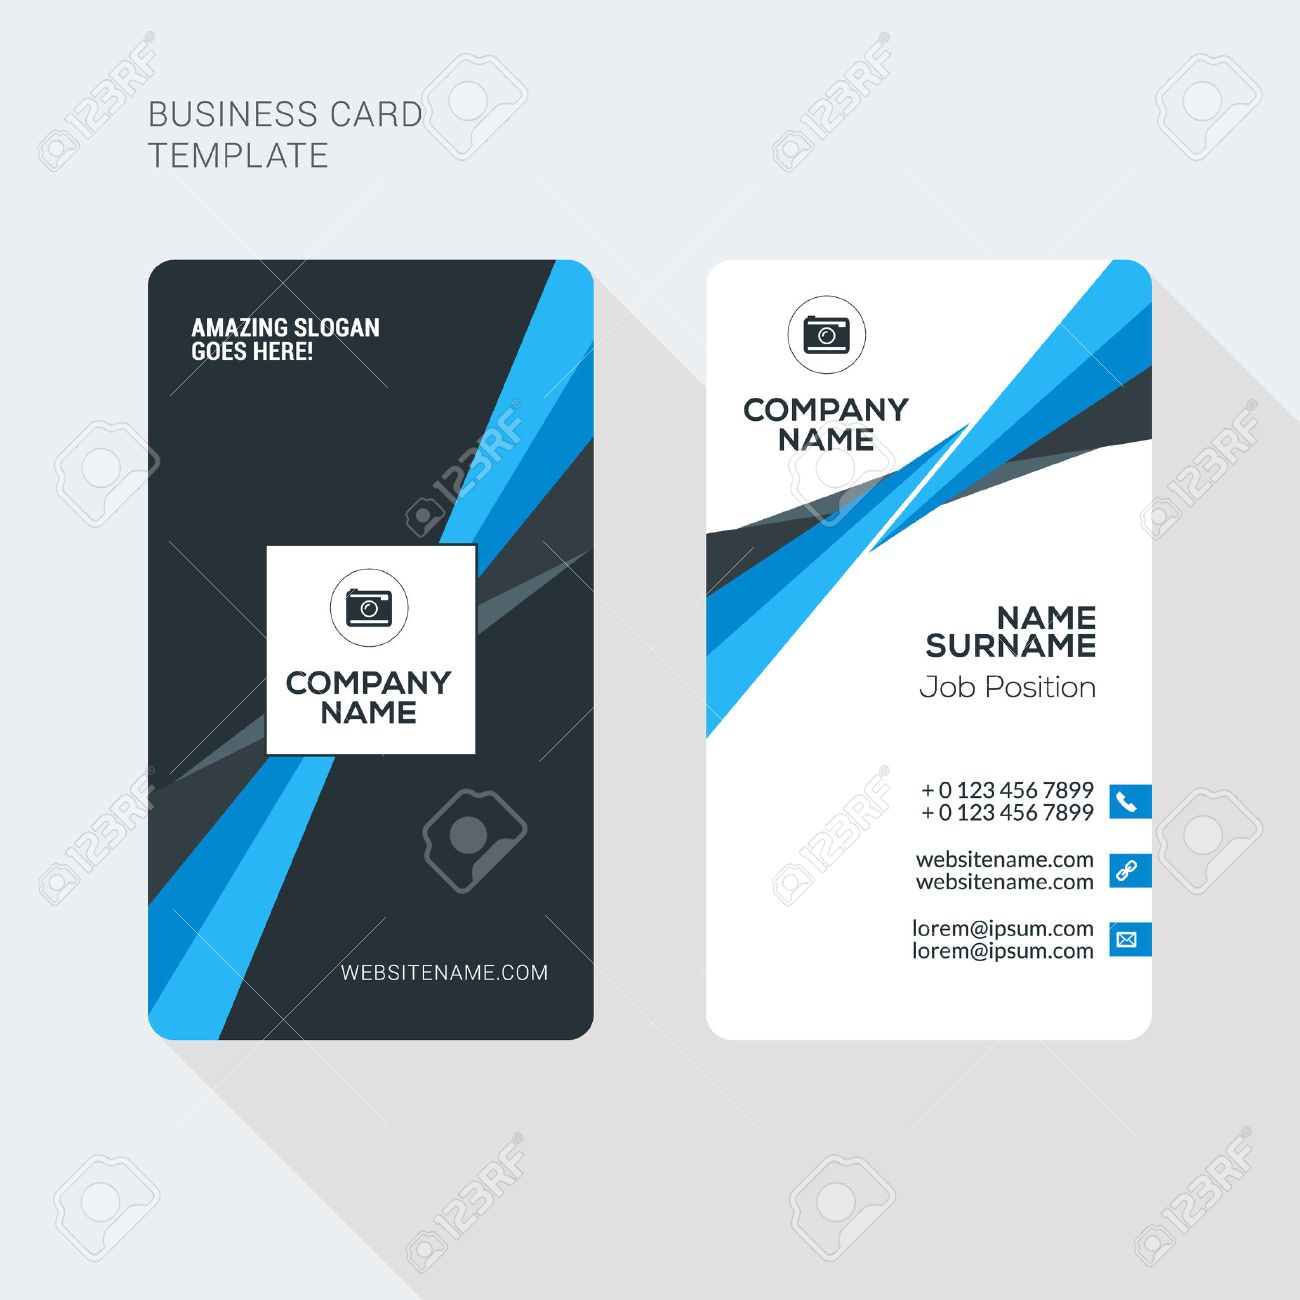 Double Sided Business Cards Word Image collections - Card Design ...